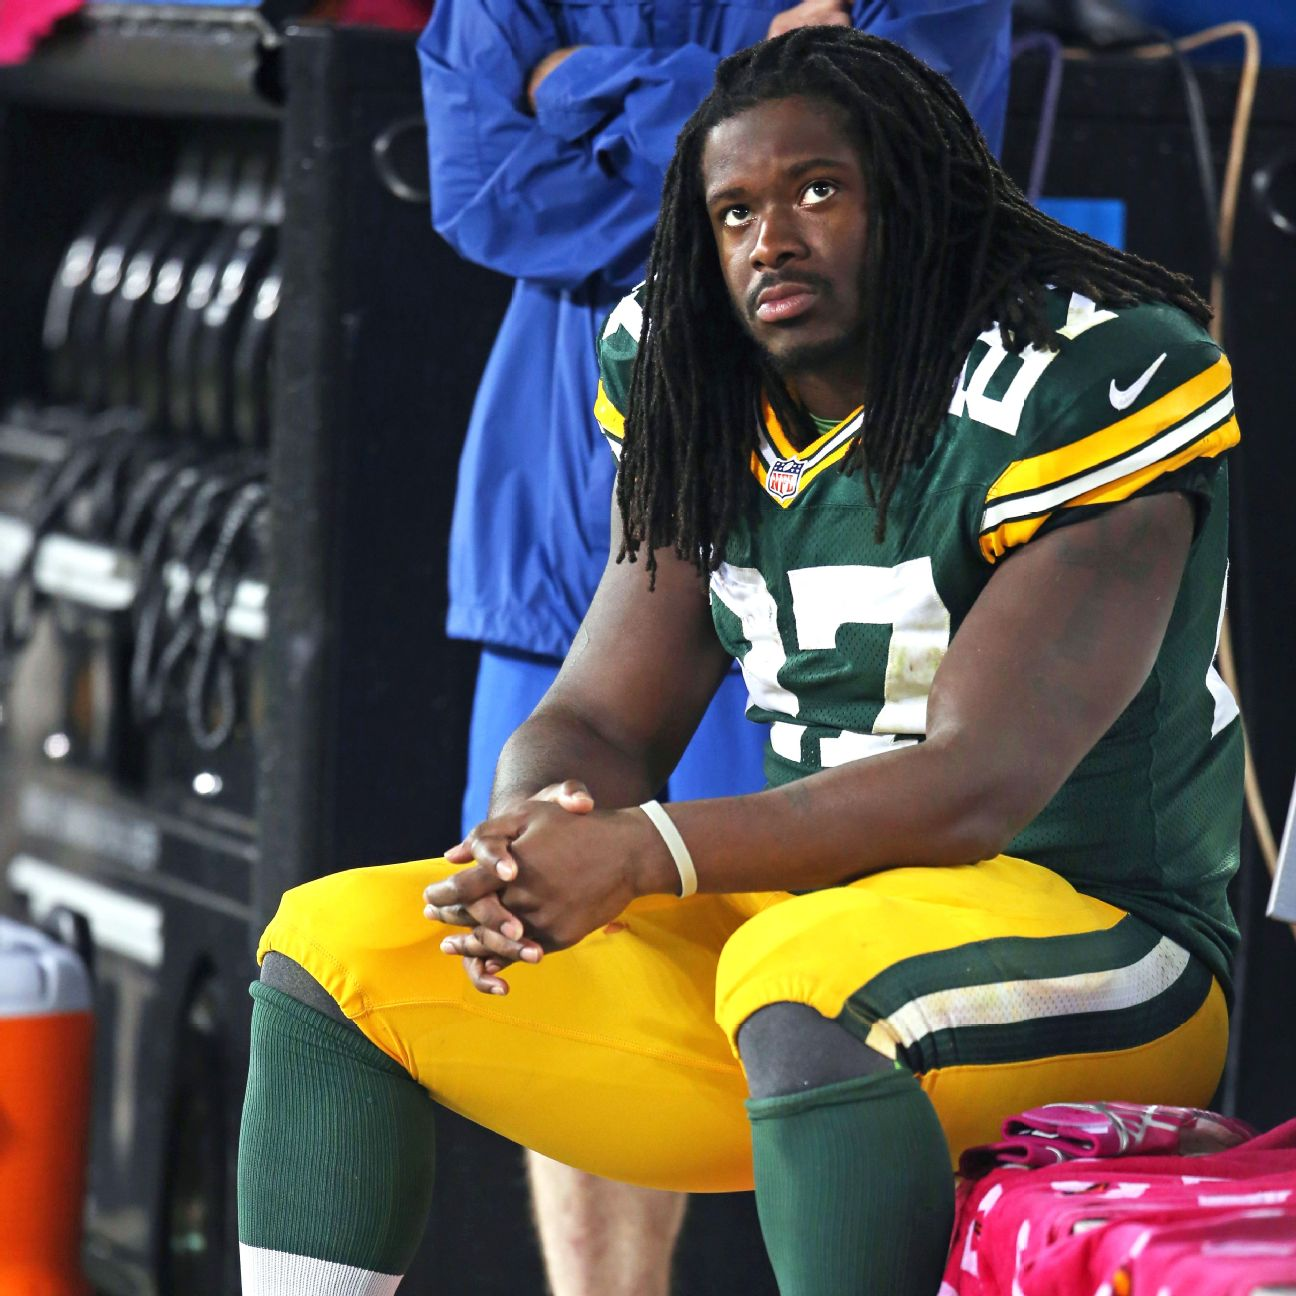 Eddie Lacy Before And After He missed his imagined...